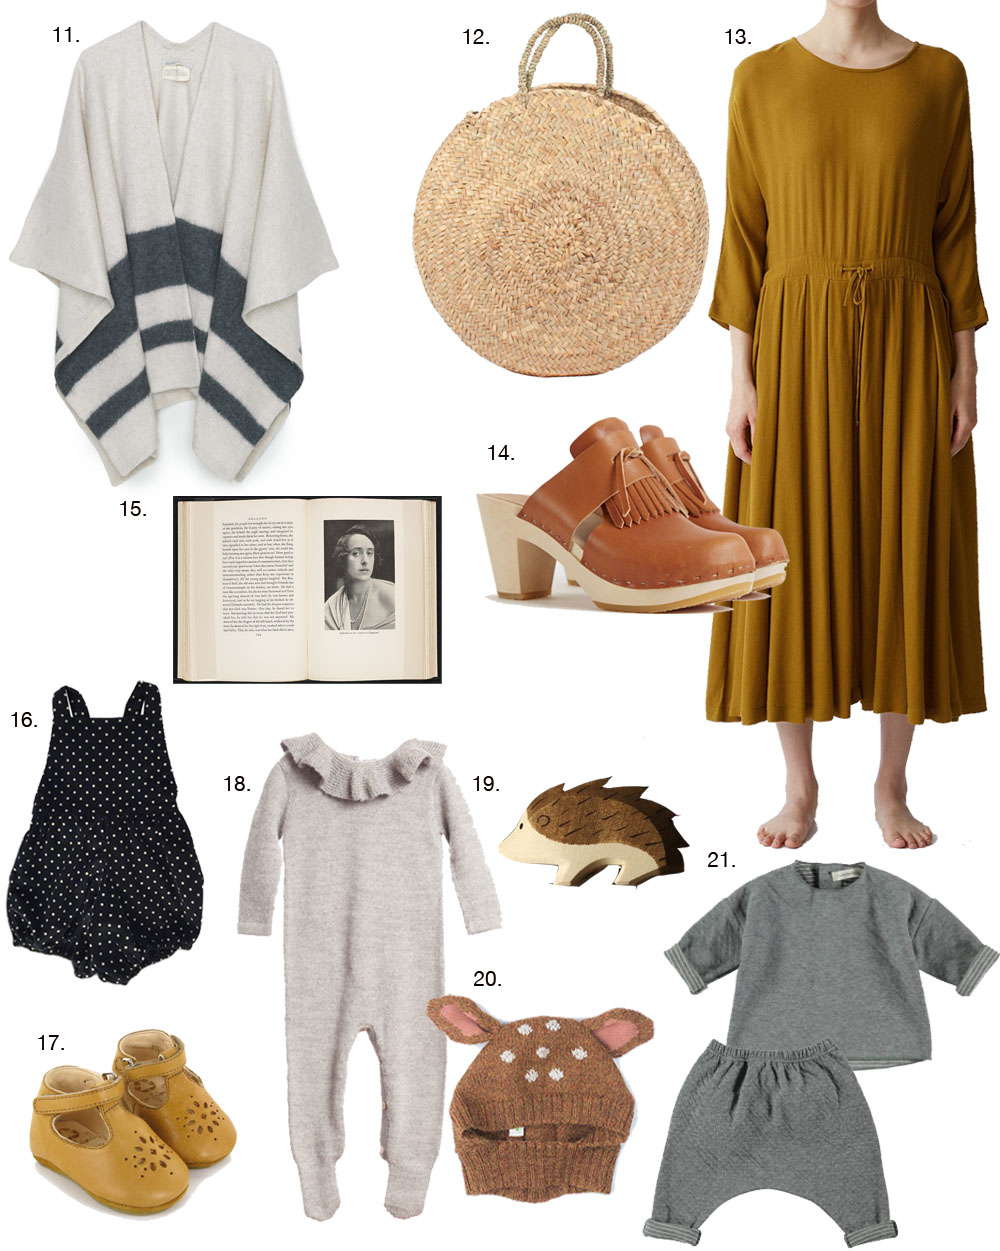 dreaming_of_1_mummy_baby_clothes_fashion_style